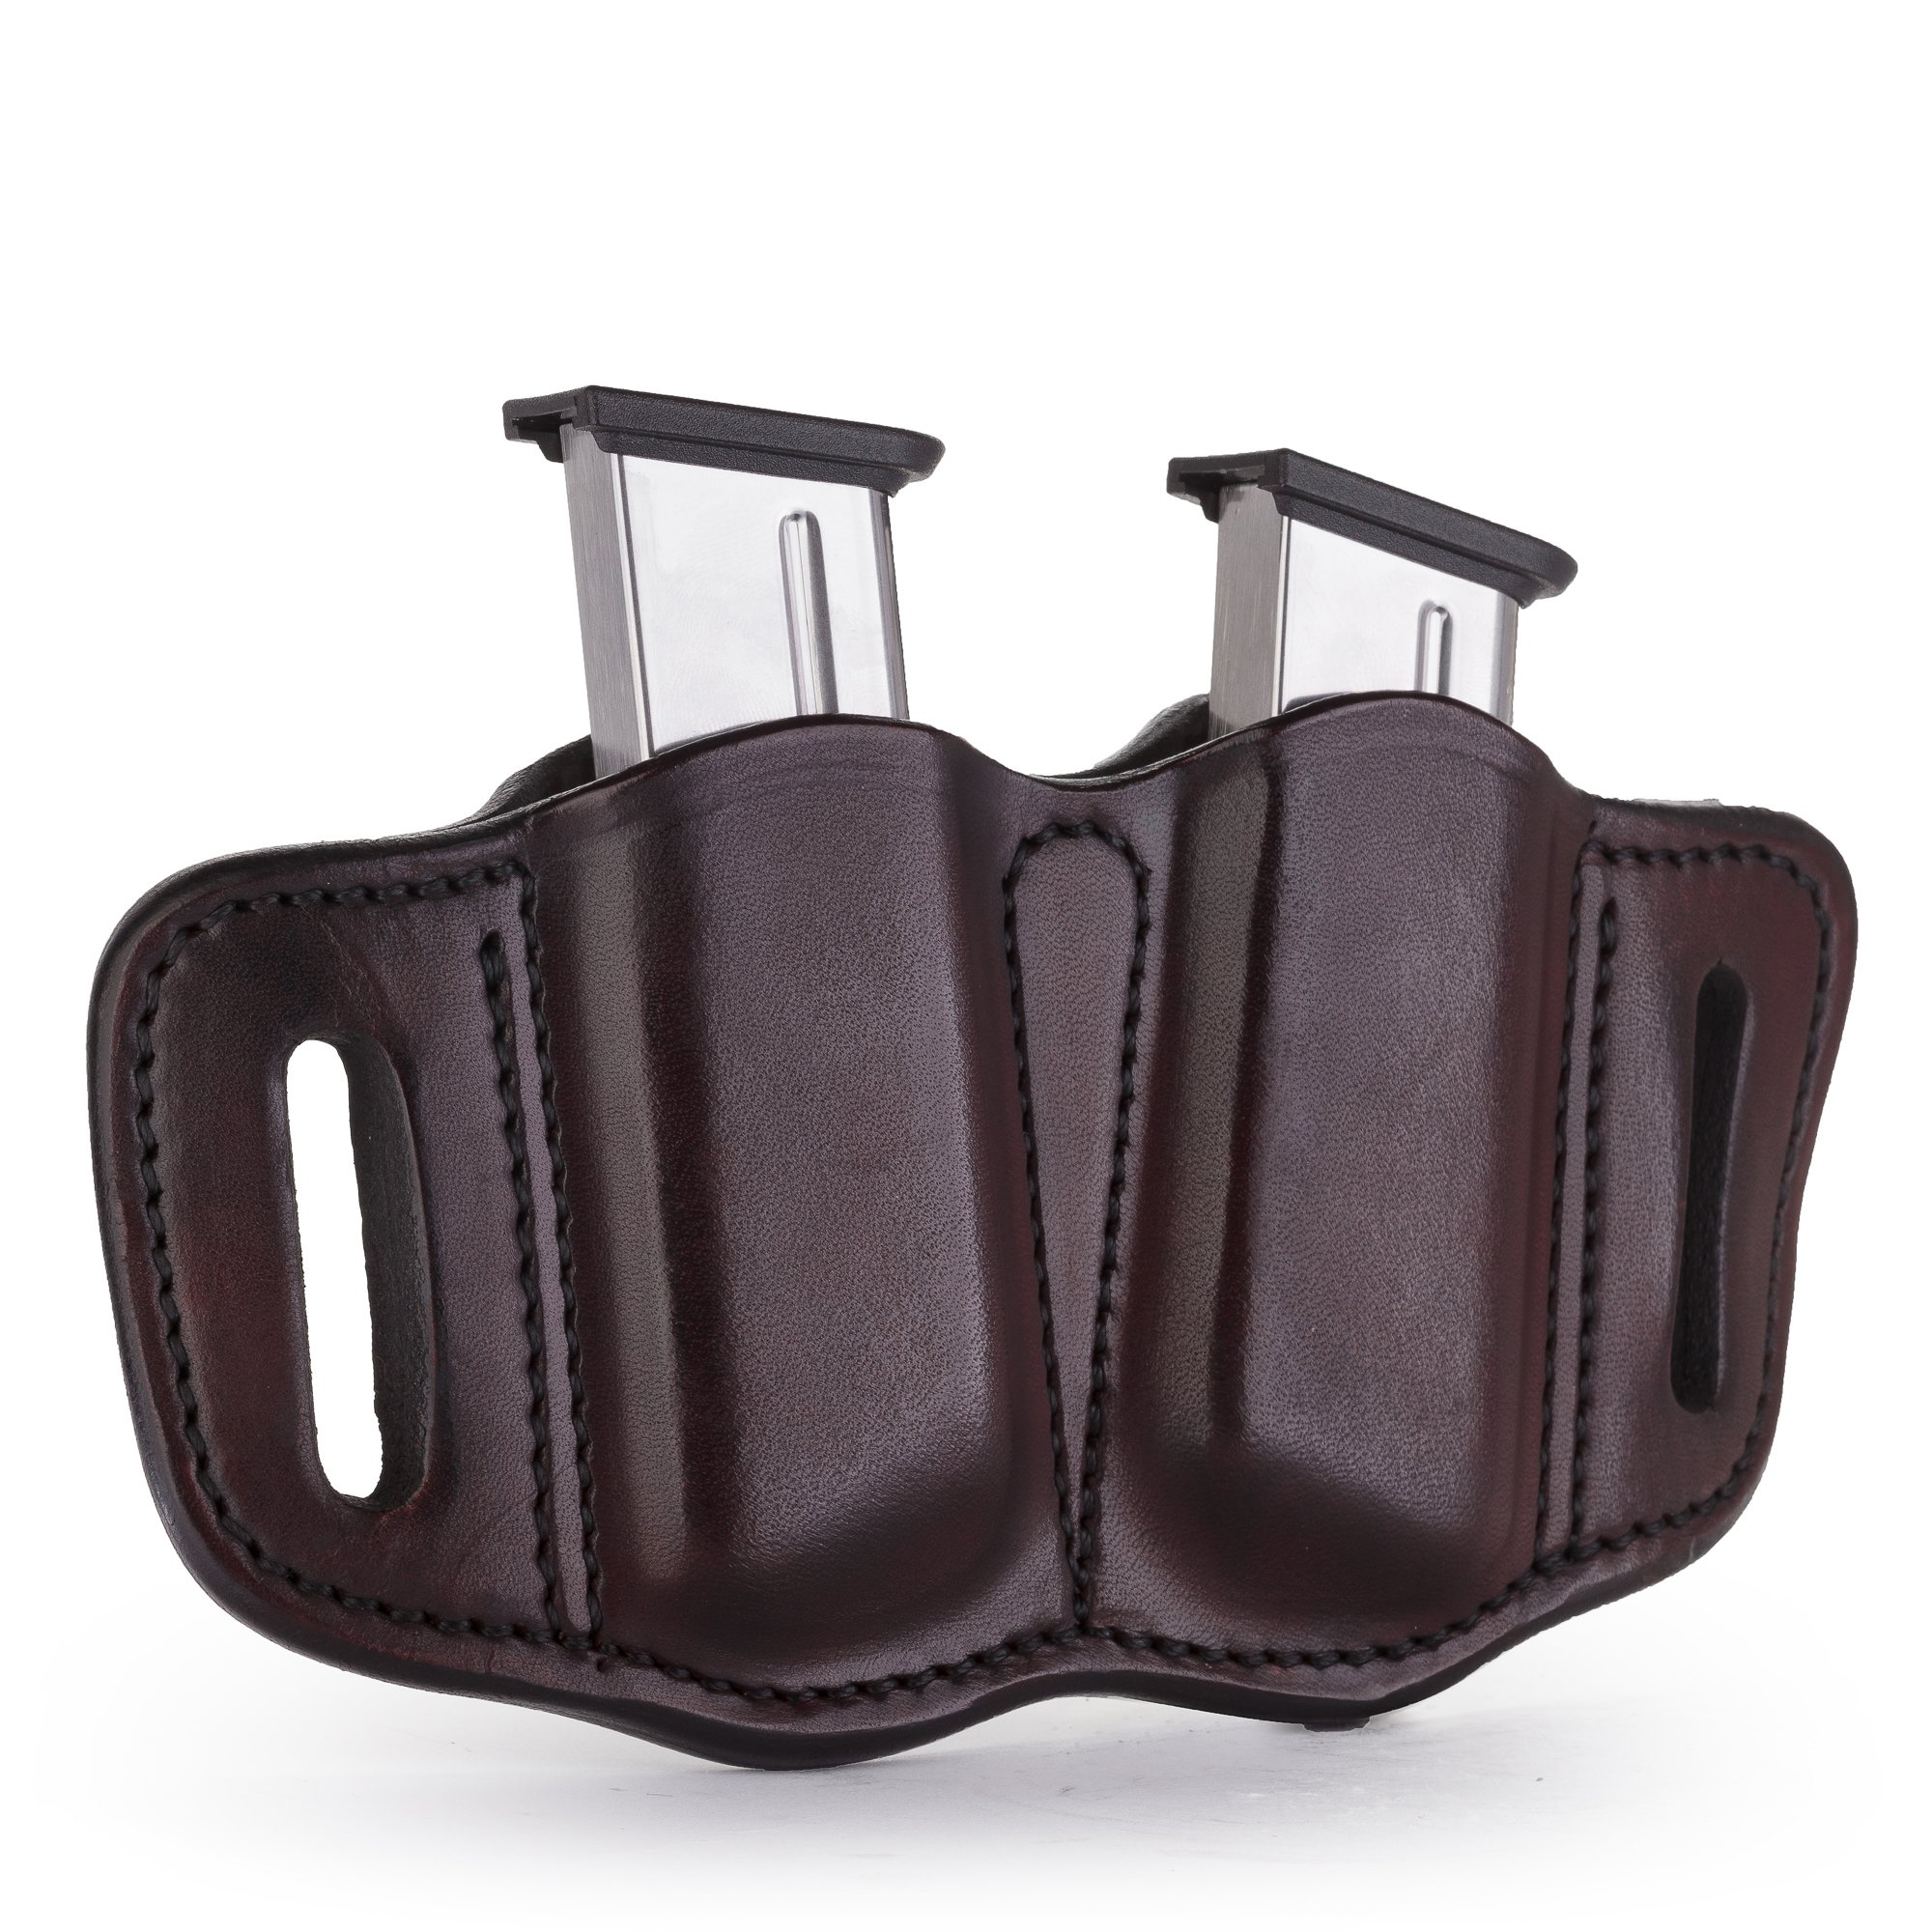 1791 GUNLEATHER 2.1 Mag Holster - Double Mag Pouch for Single Stack Mags, OWB Magazine Pouch for Belts - Classic Brown, Stealth Black, Black & Brown and Signature Brown